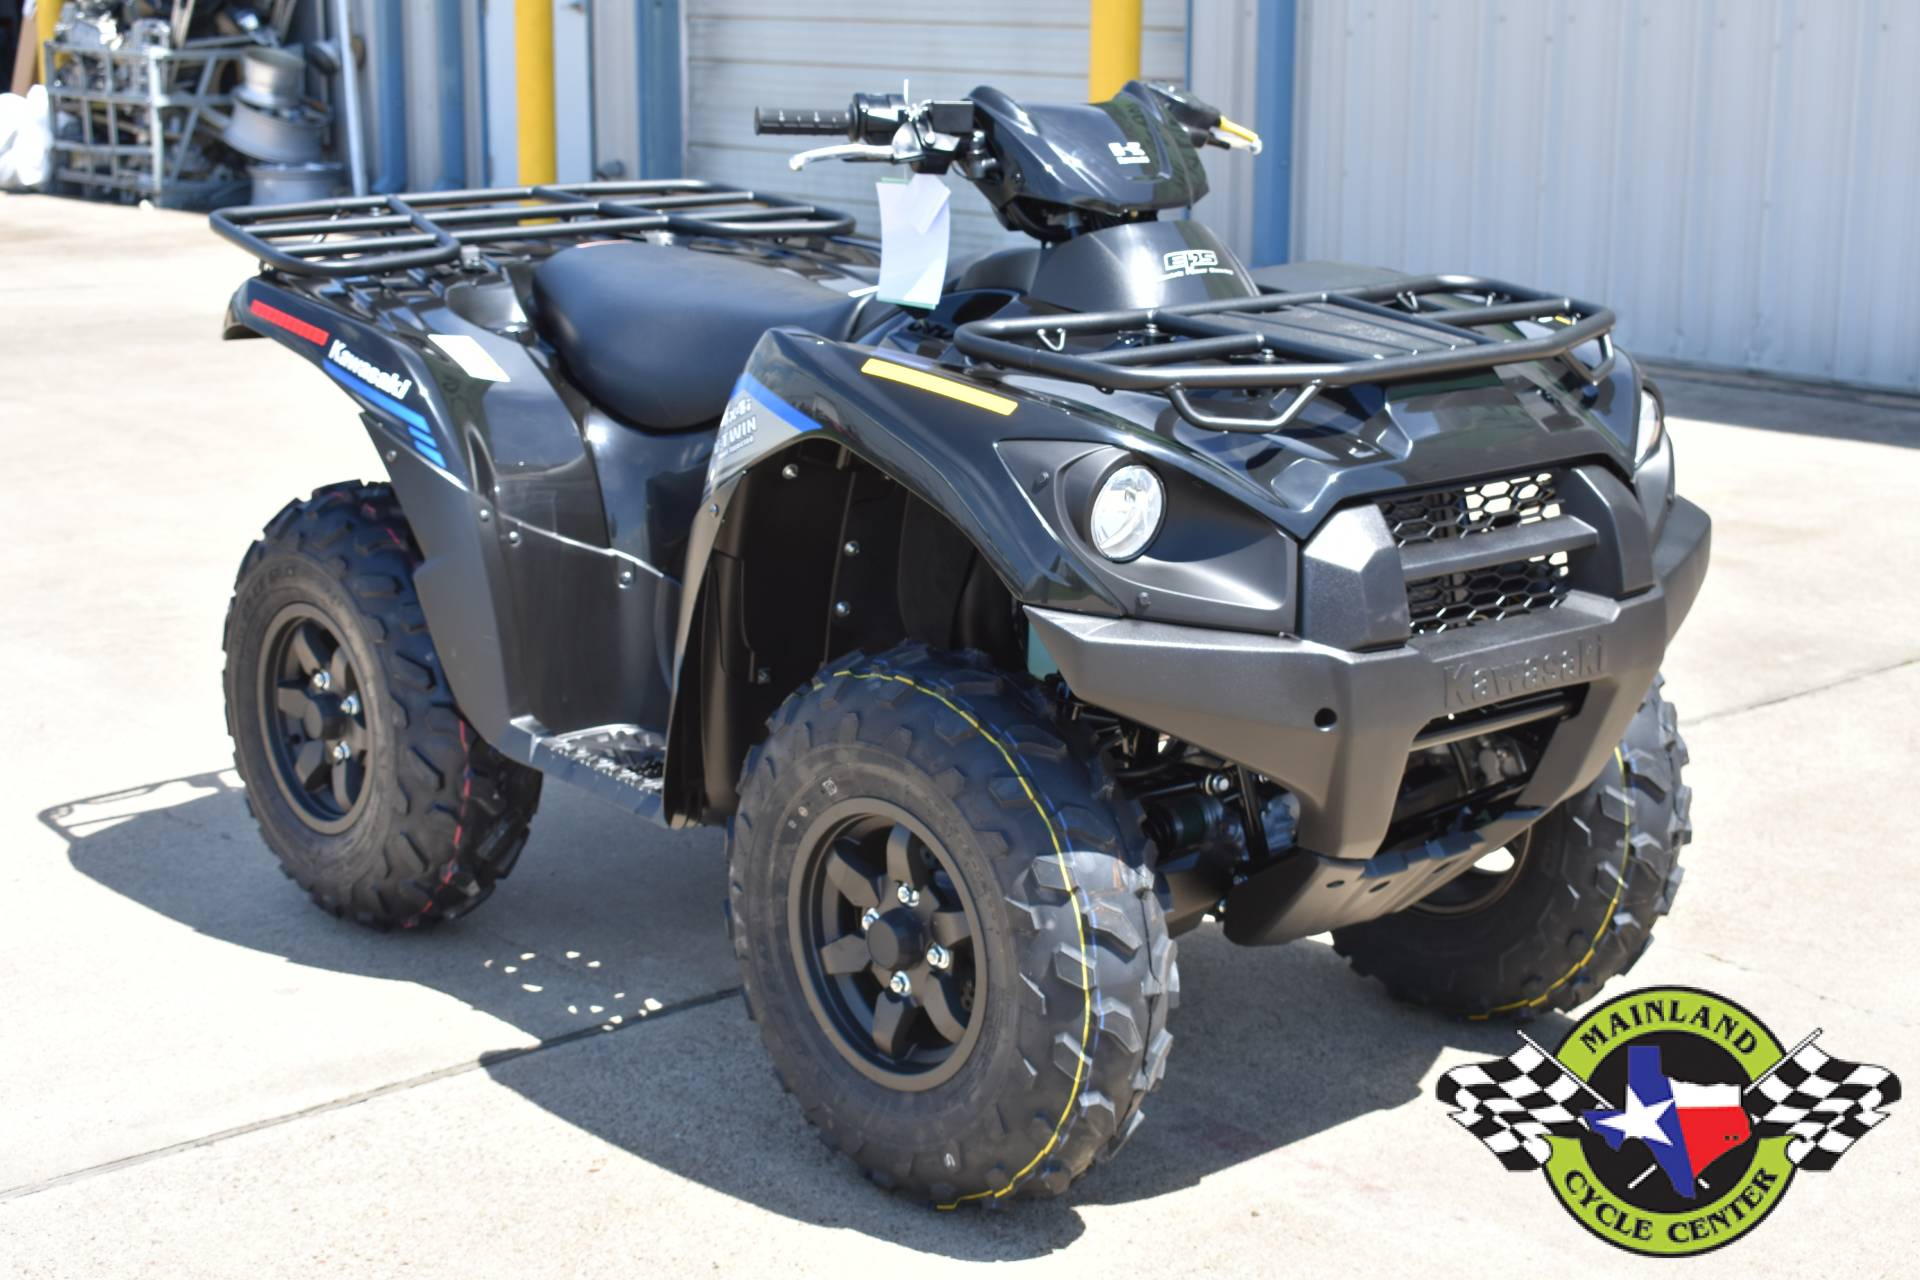 2021 Kawasaki Brute Force 750 4x4i EPS in La Marque, Texas - Photo 2